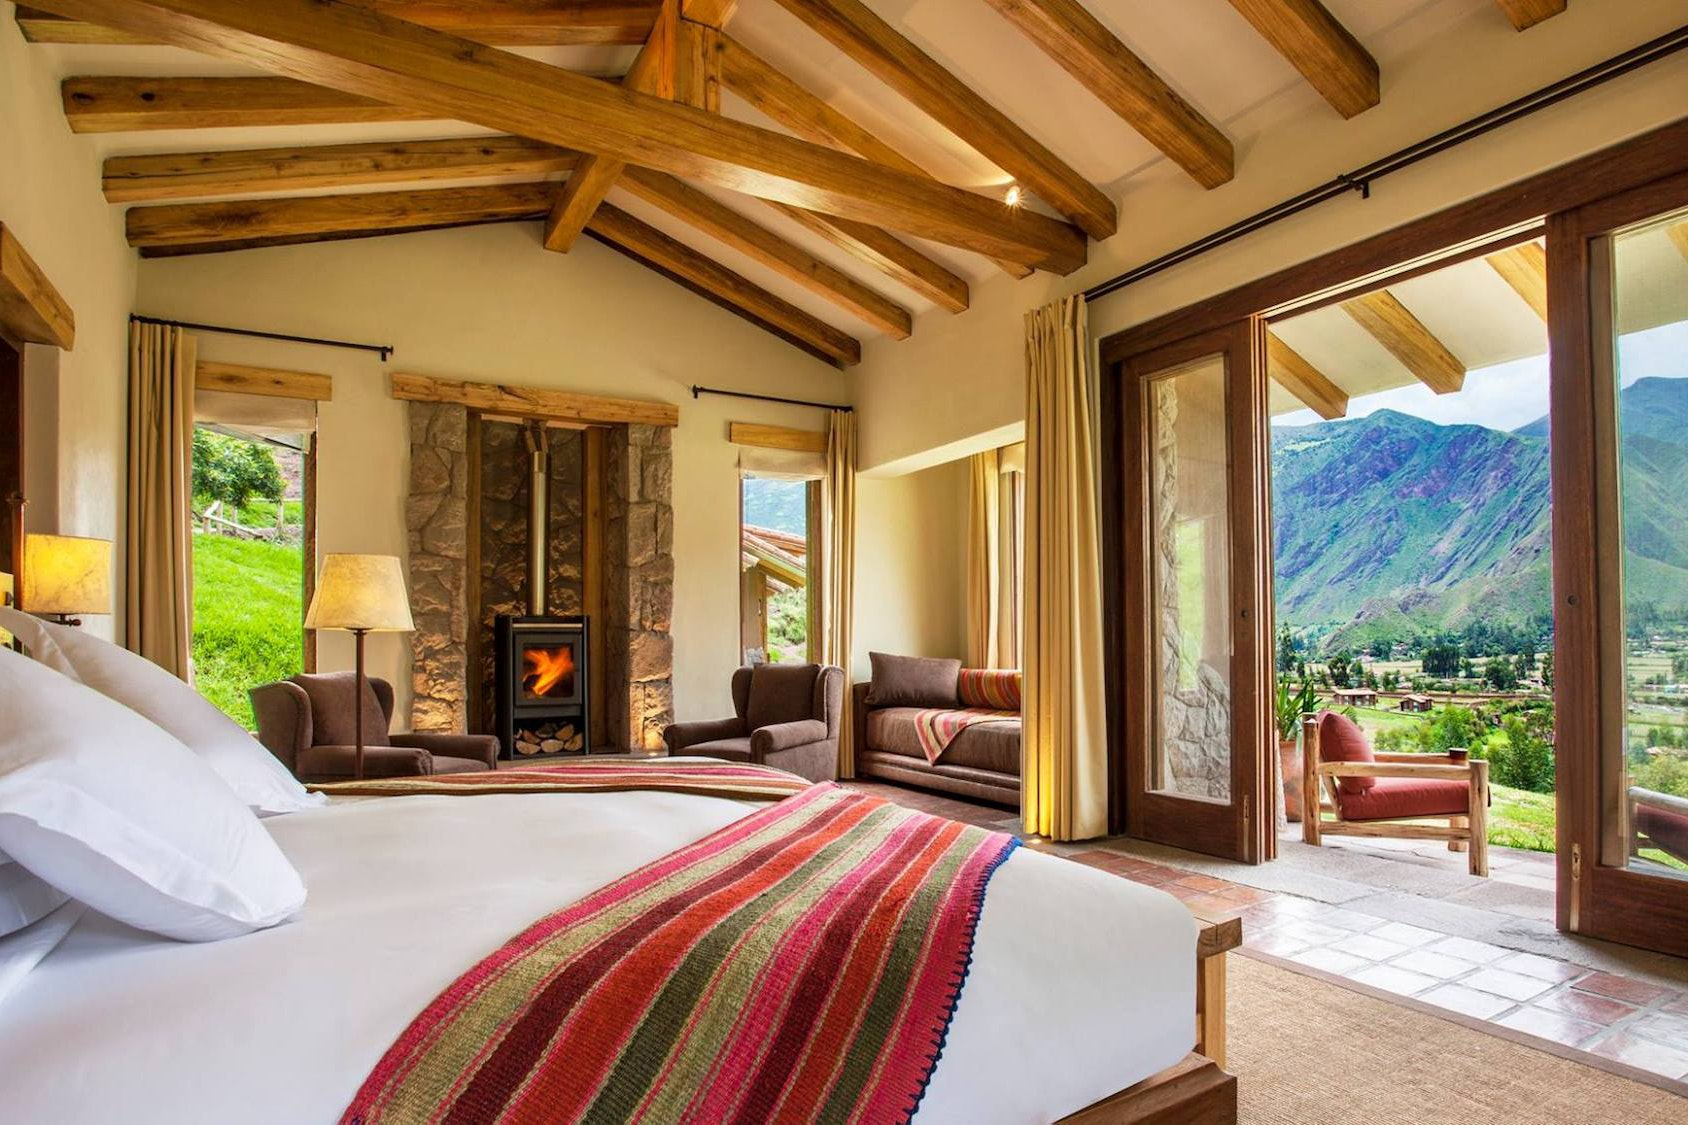 Inkaterra Hacienda Urubamba sits in the mountainous valley between Cusco and Machu Picchu.